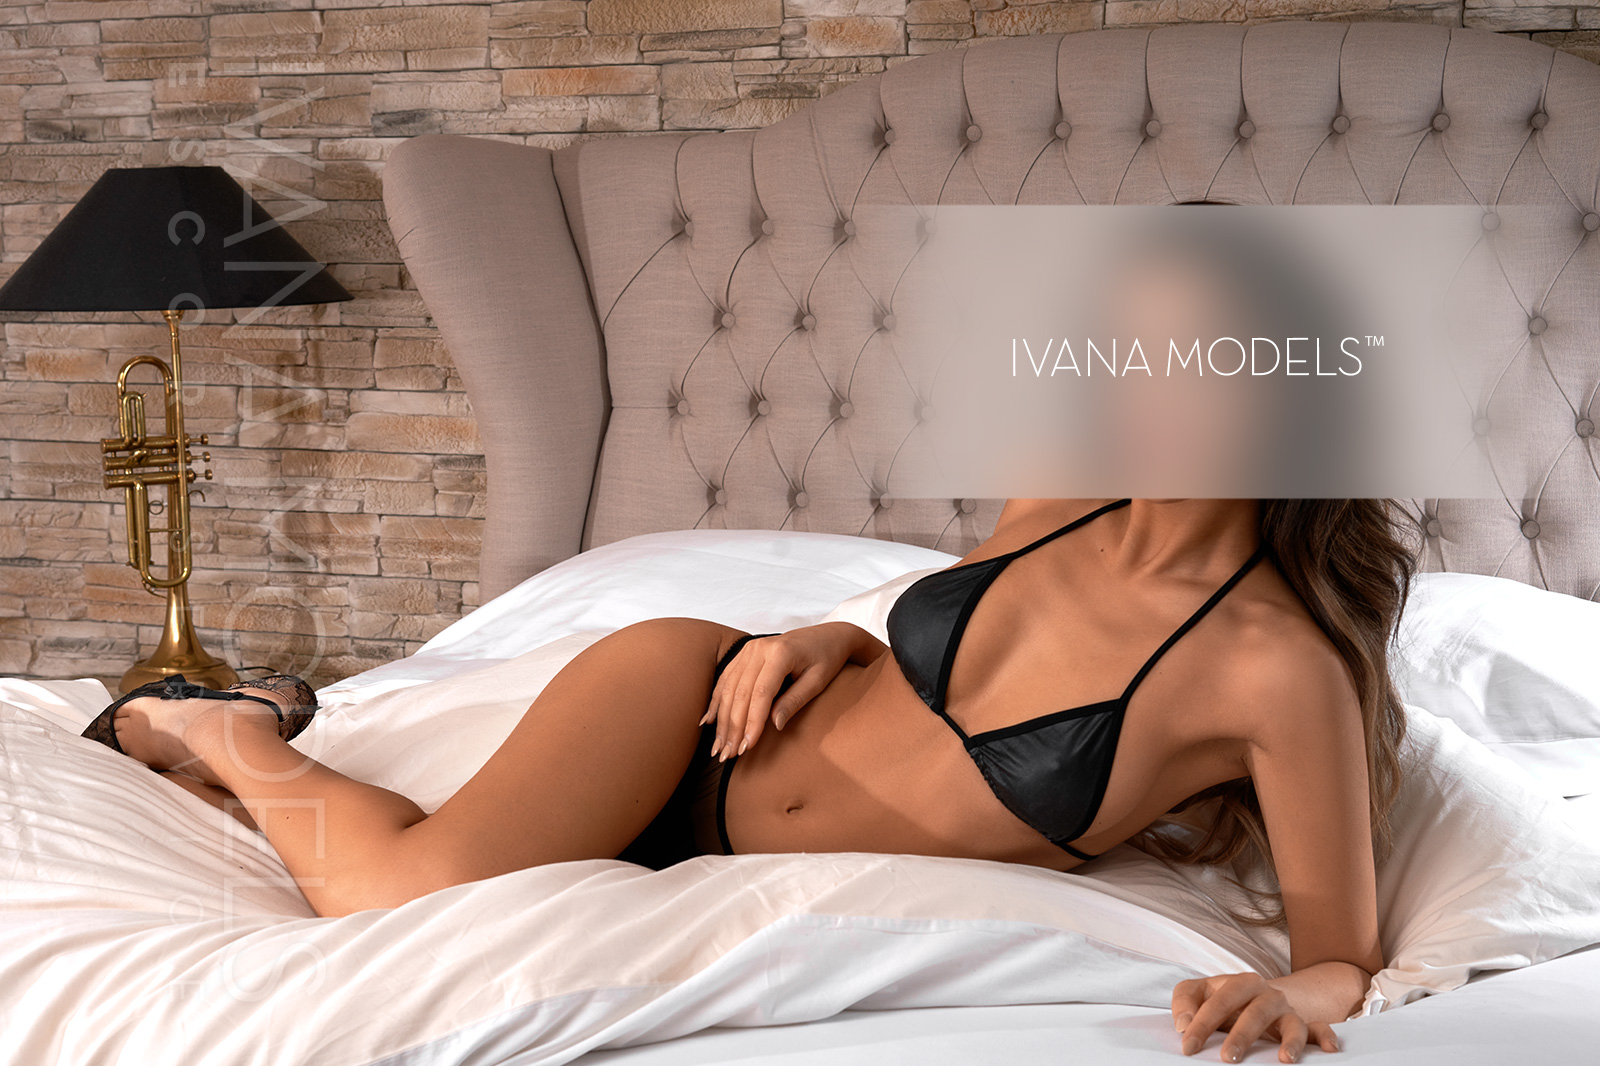 Europe biggest escort services - Ariana